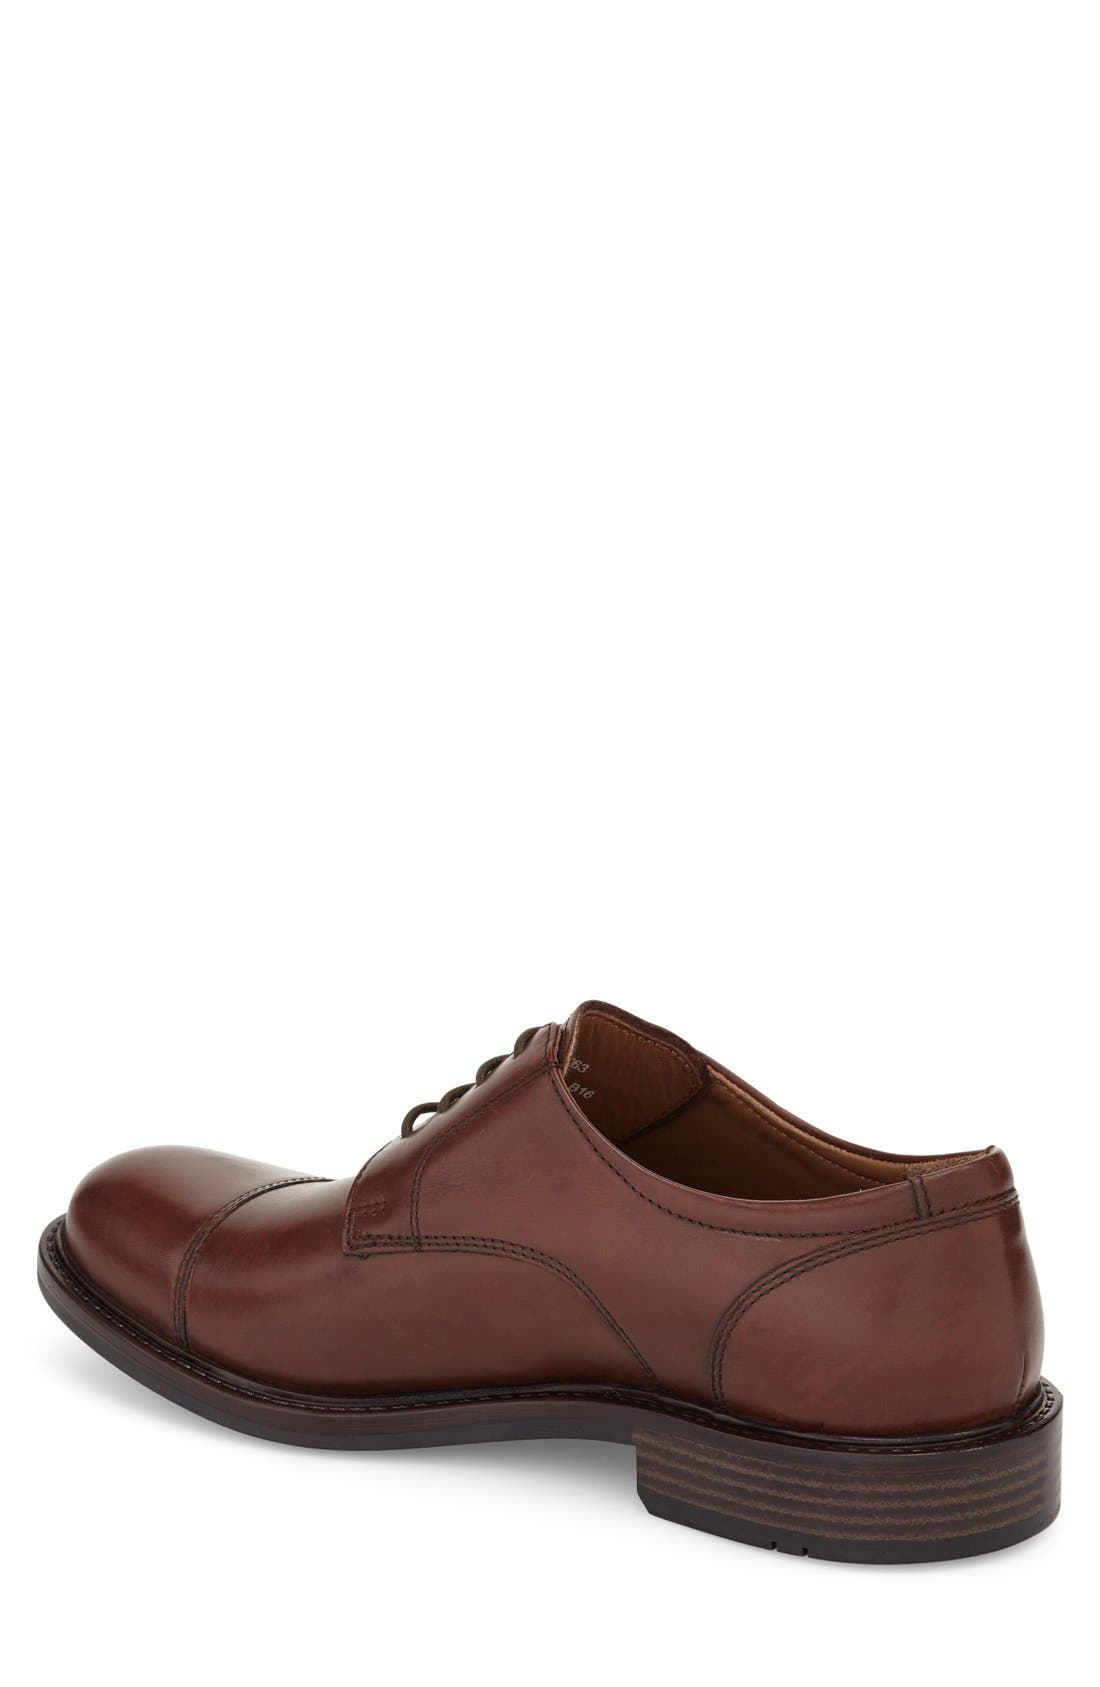 Tabor Cap Toe Derby,                             Alternate thumbnail 2, color,                             Brown Leather